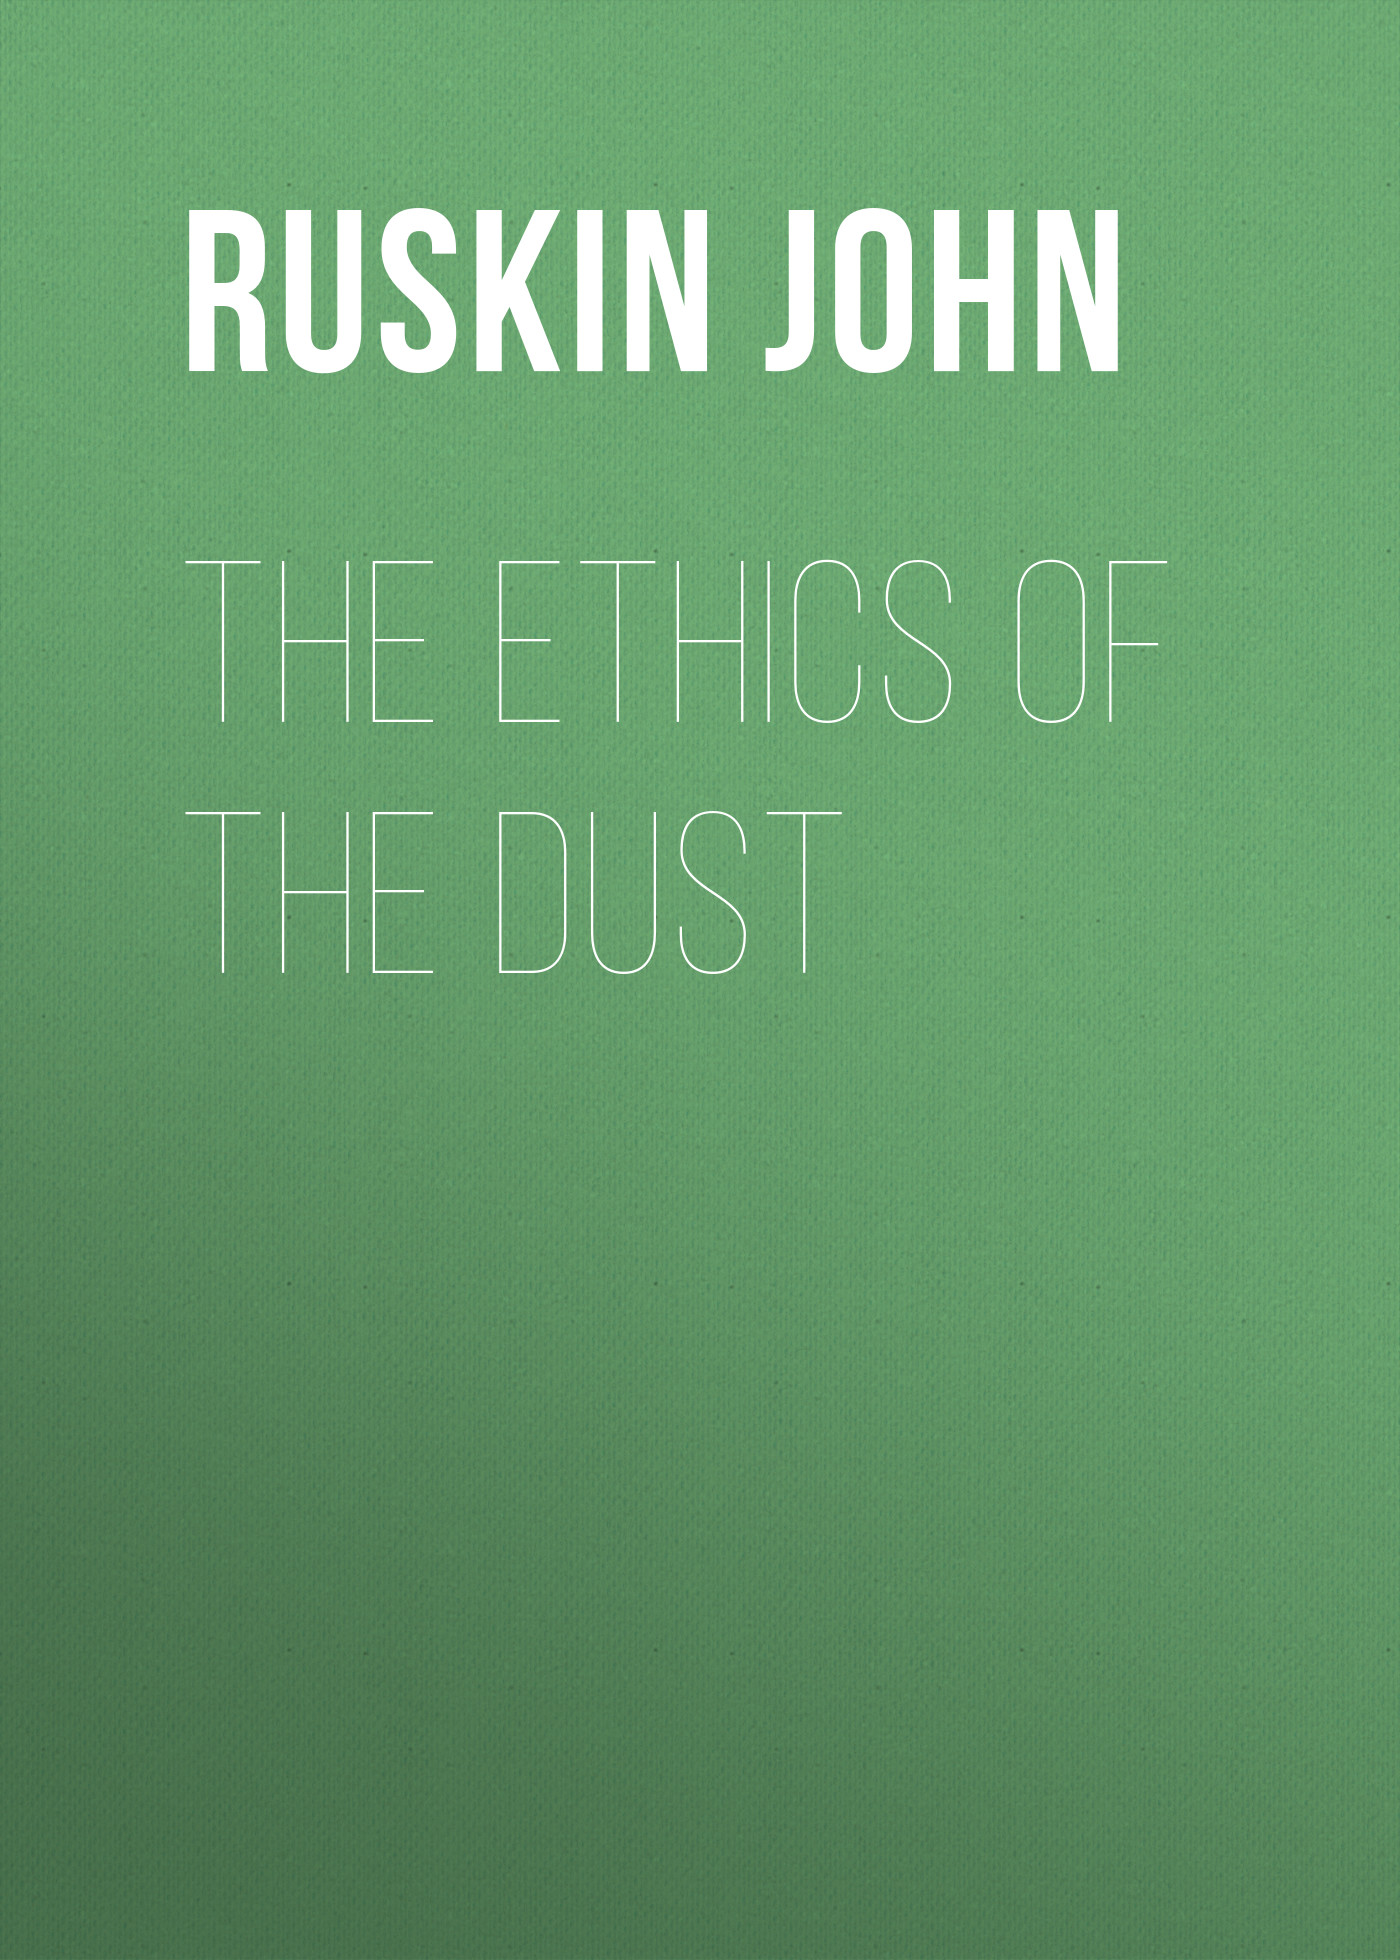 Ruskin John The Ethics of the Dust ruskin john the stones of venice volume 1 of 3